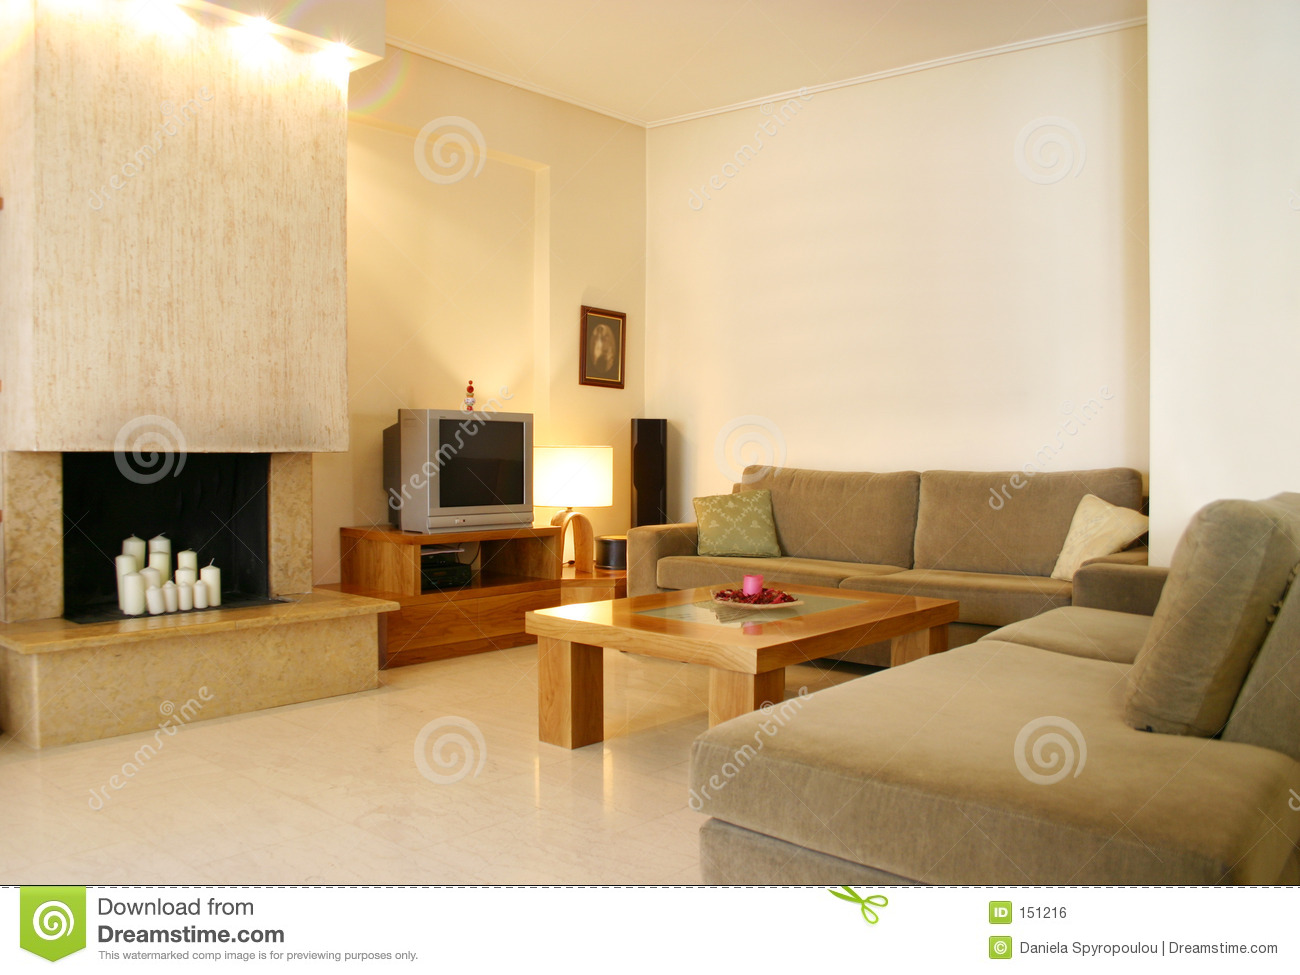 Free interior images of homes